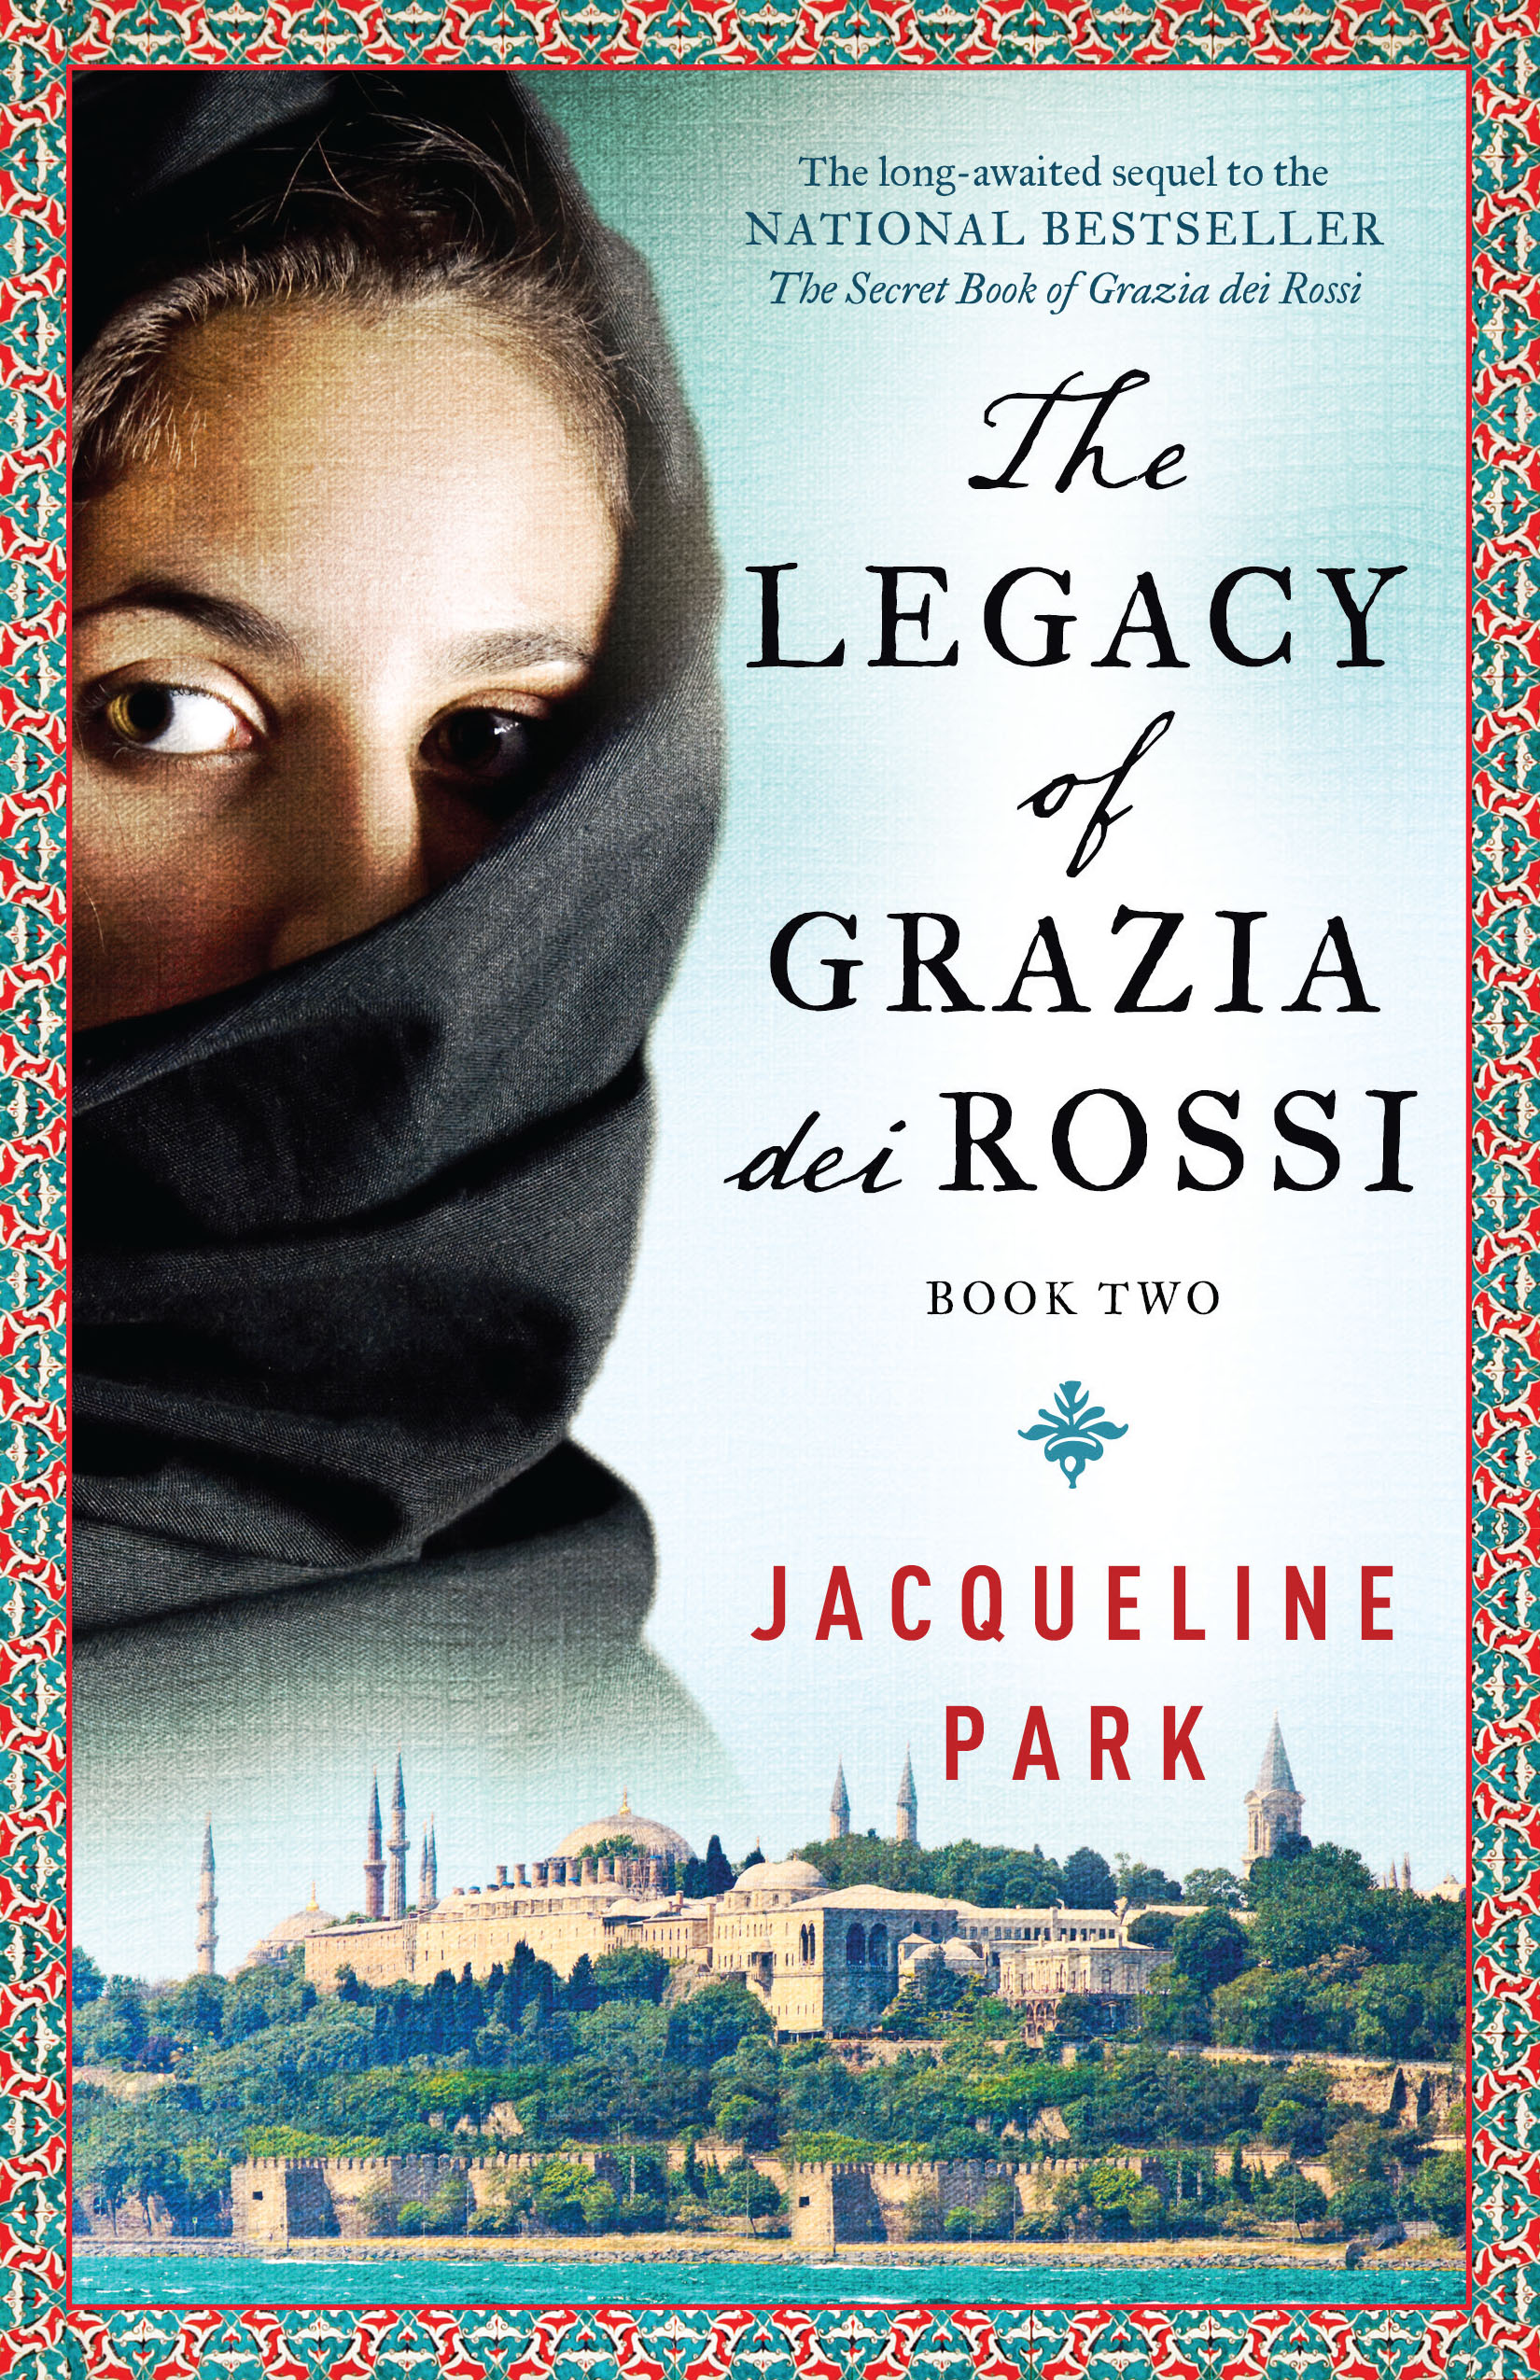 The Legacy of Grazia dei Rossi